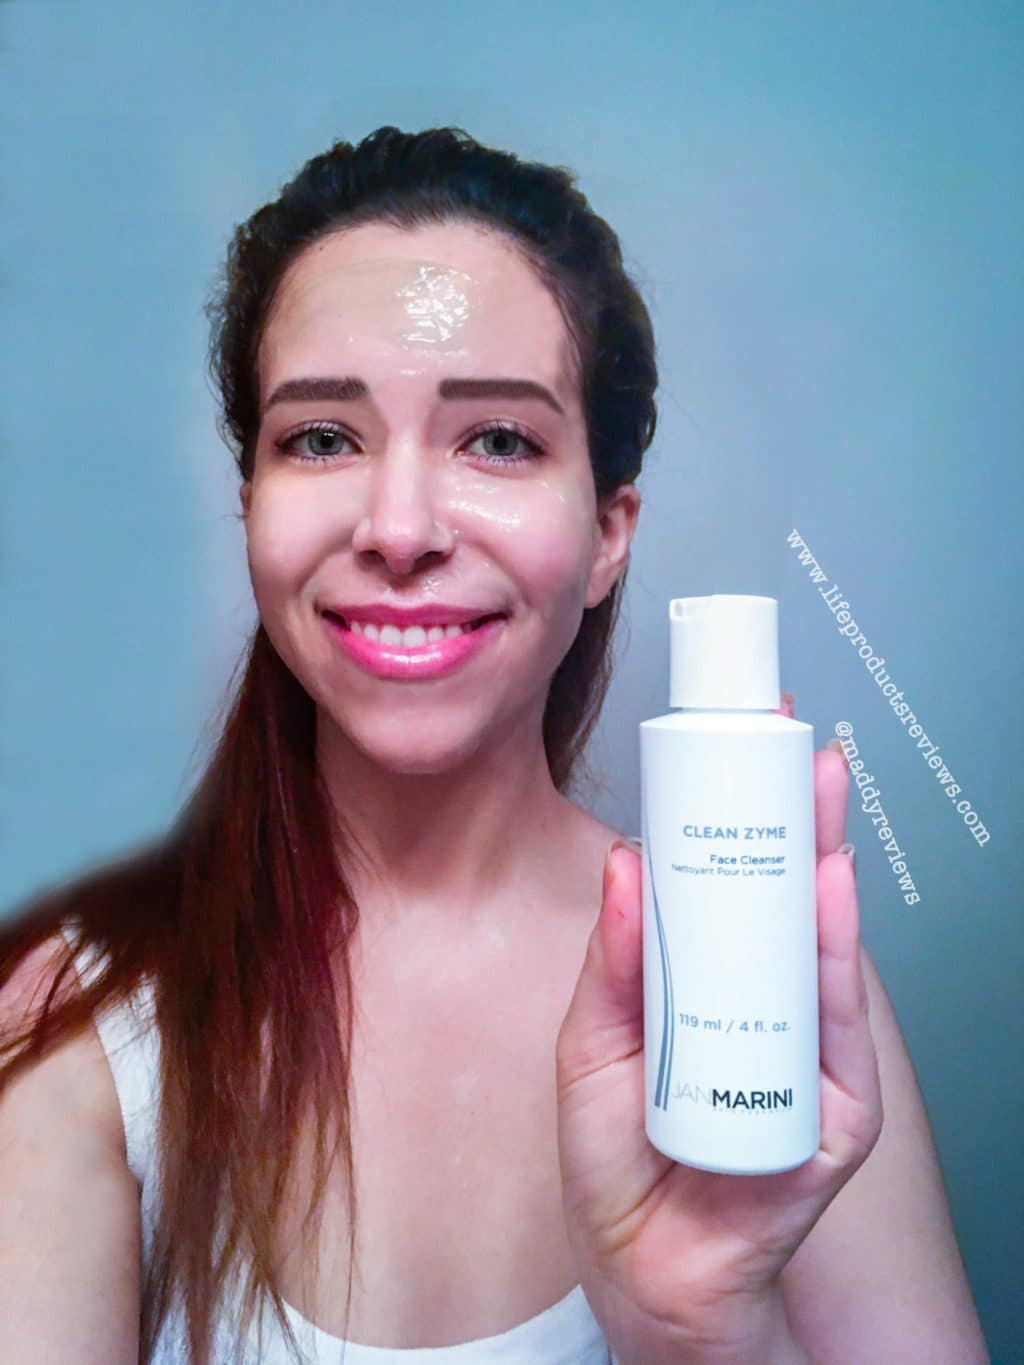 Jan Marini before and after demo model demonstration facial